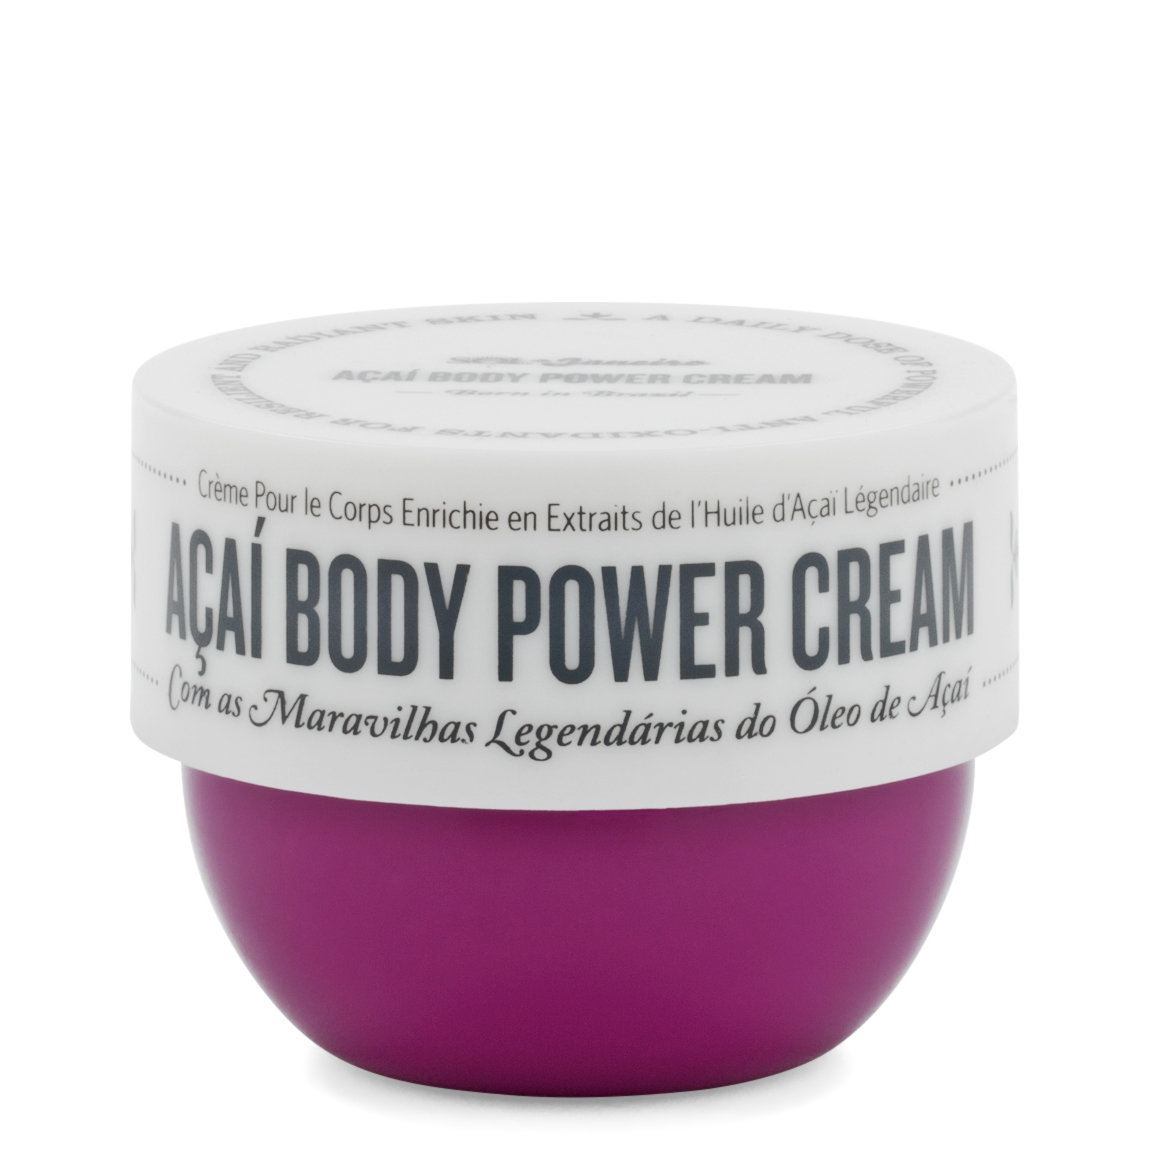 Sol de Janeiro Açaí Body Power Cream 2.5 oz product smear.